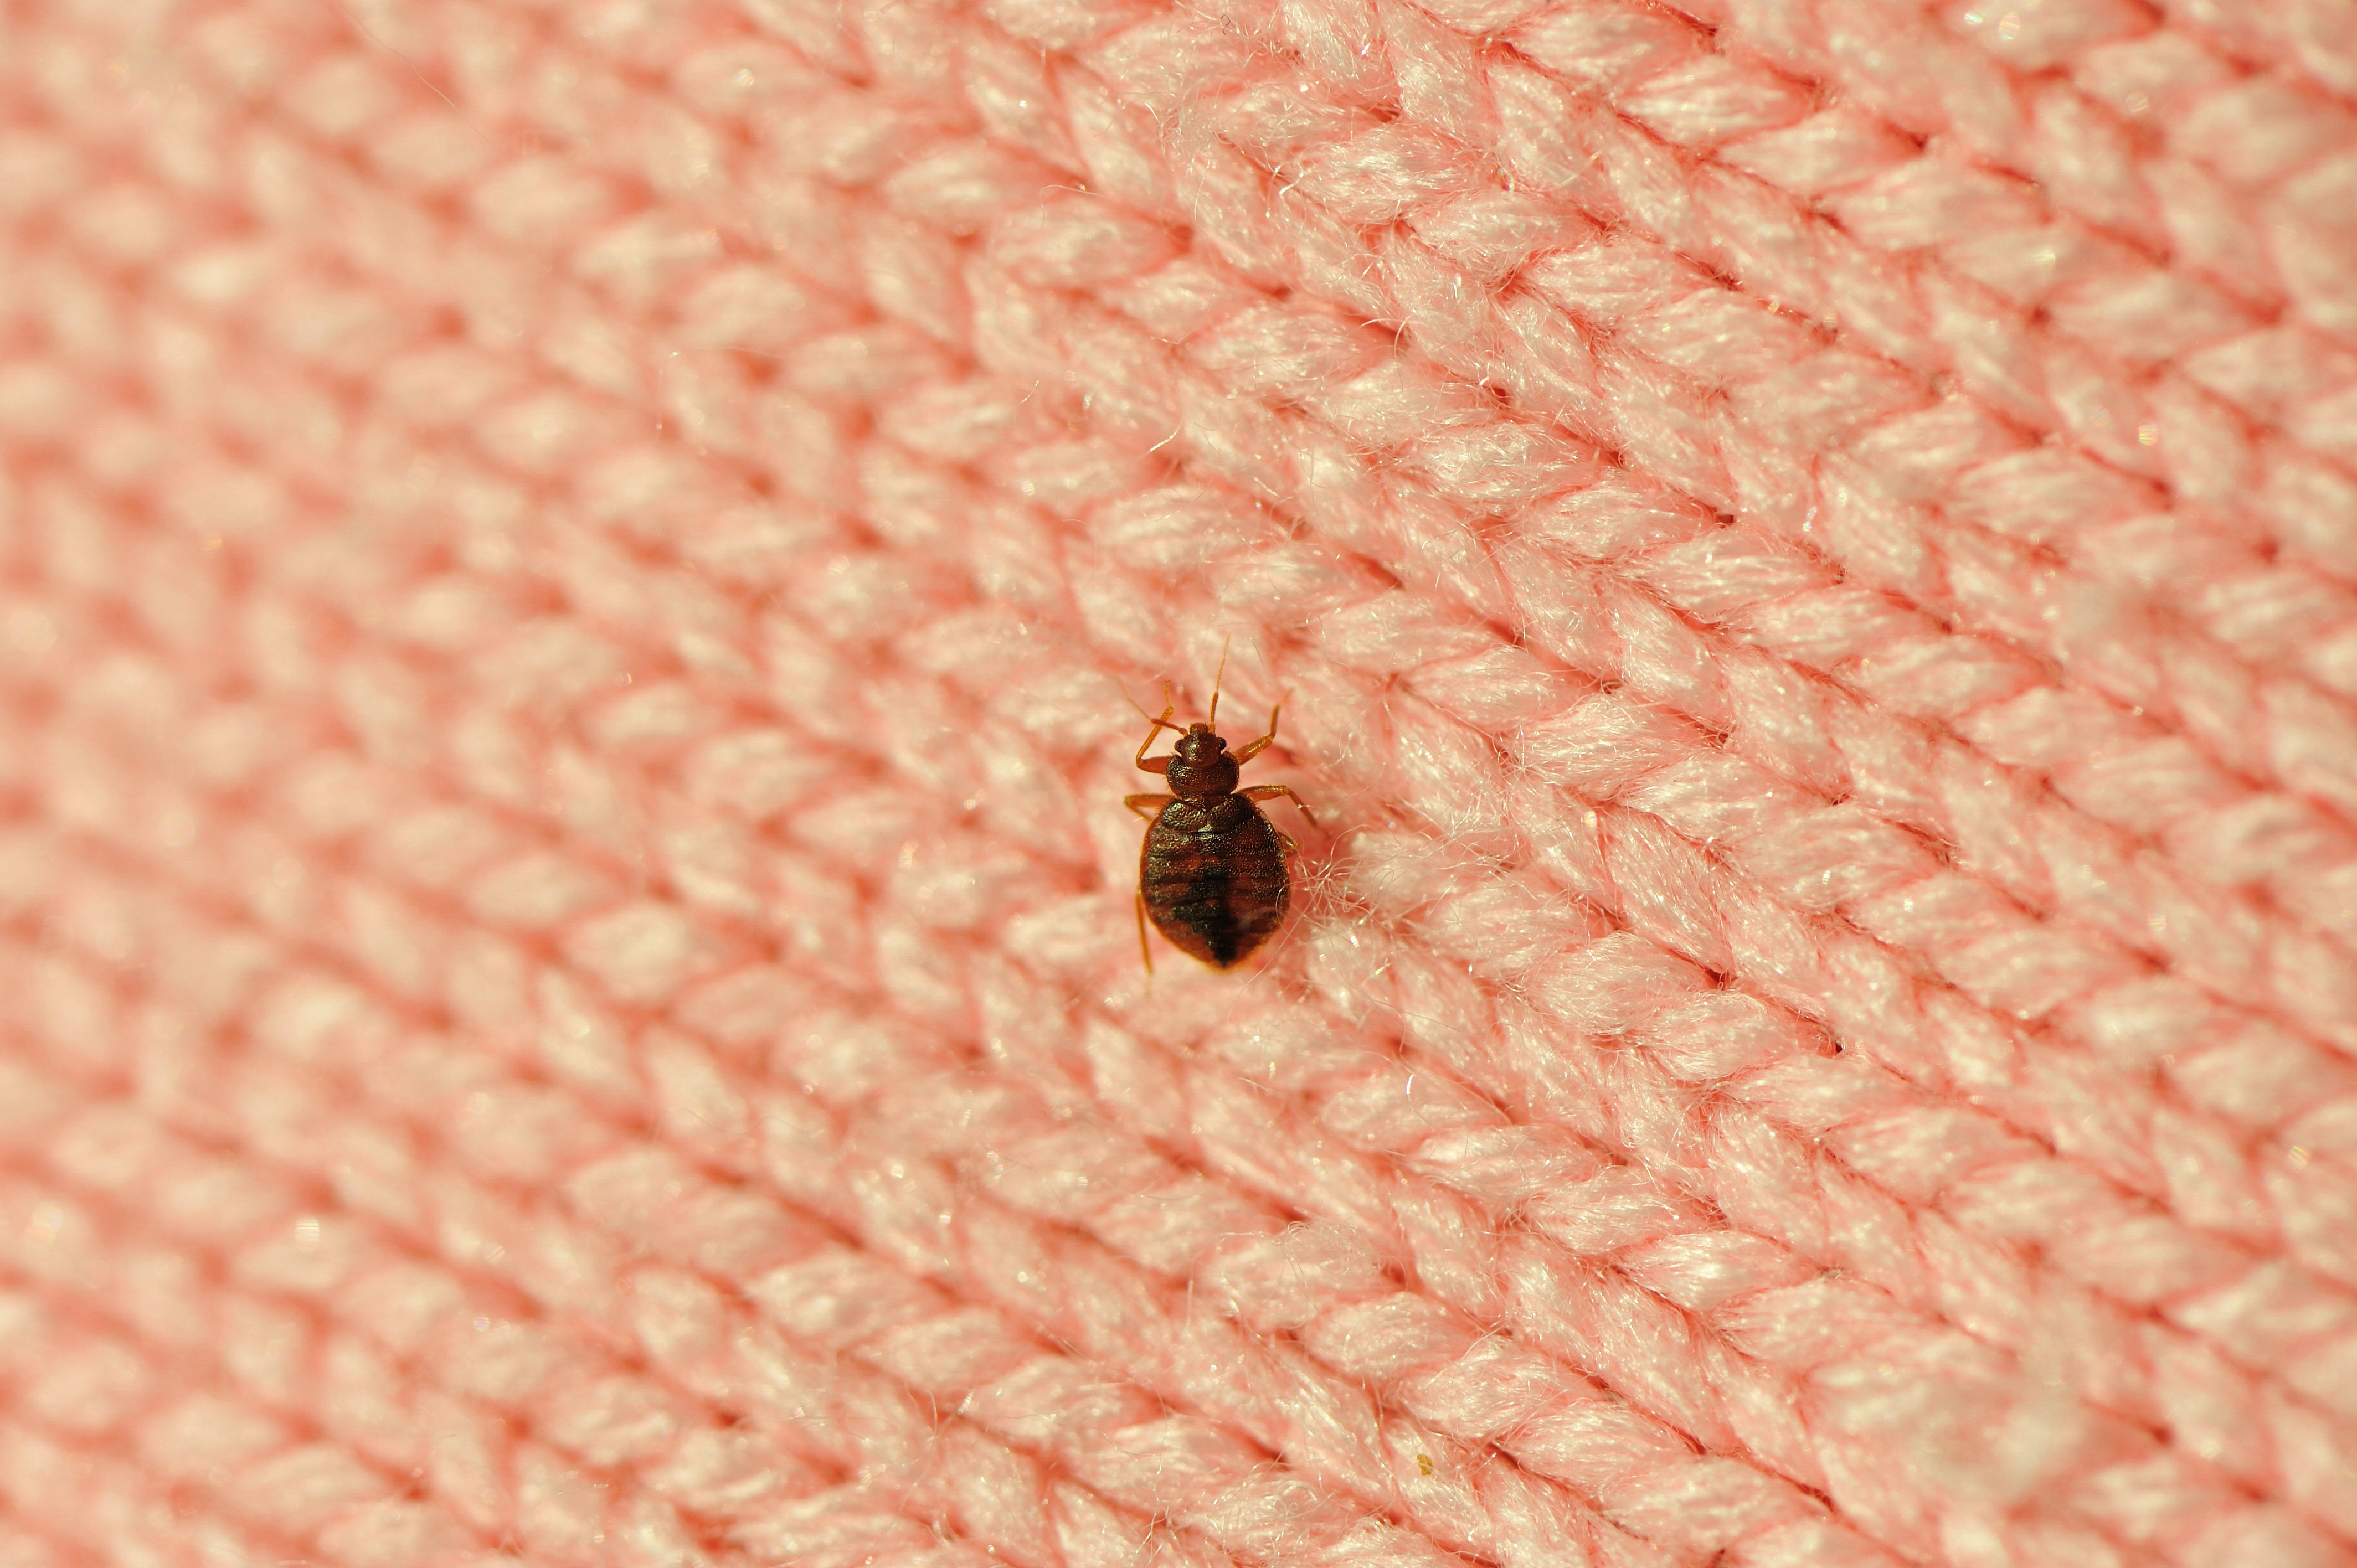 Bed Bugs Image 02